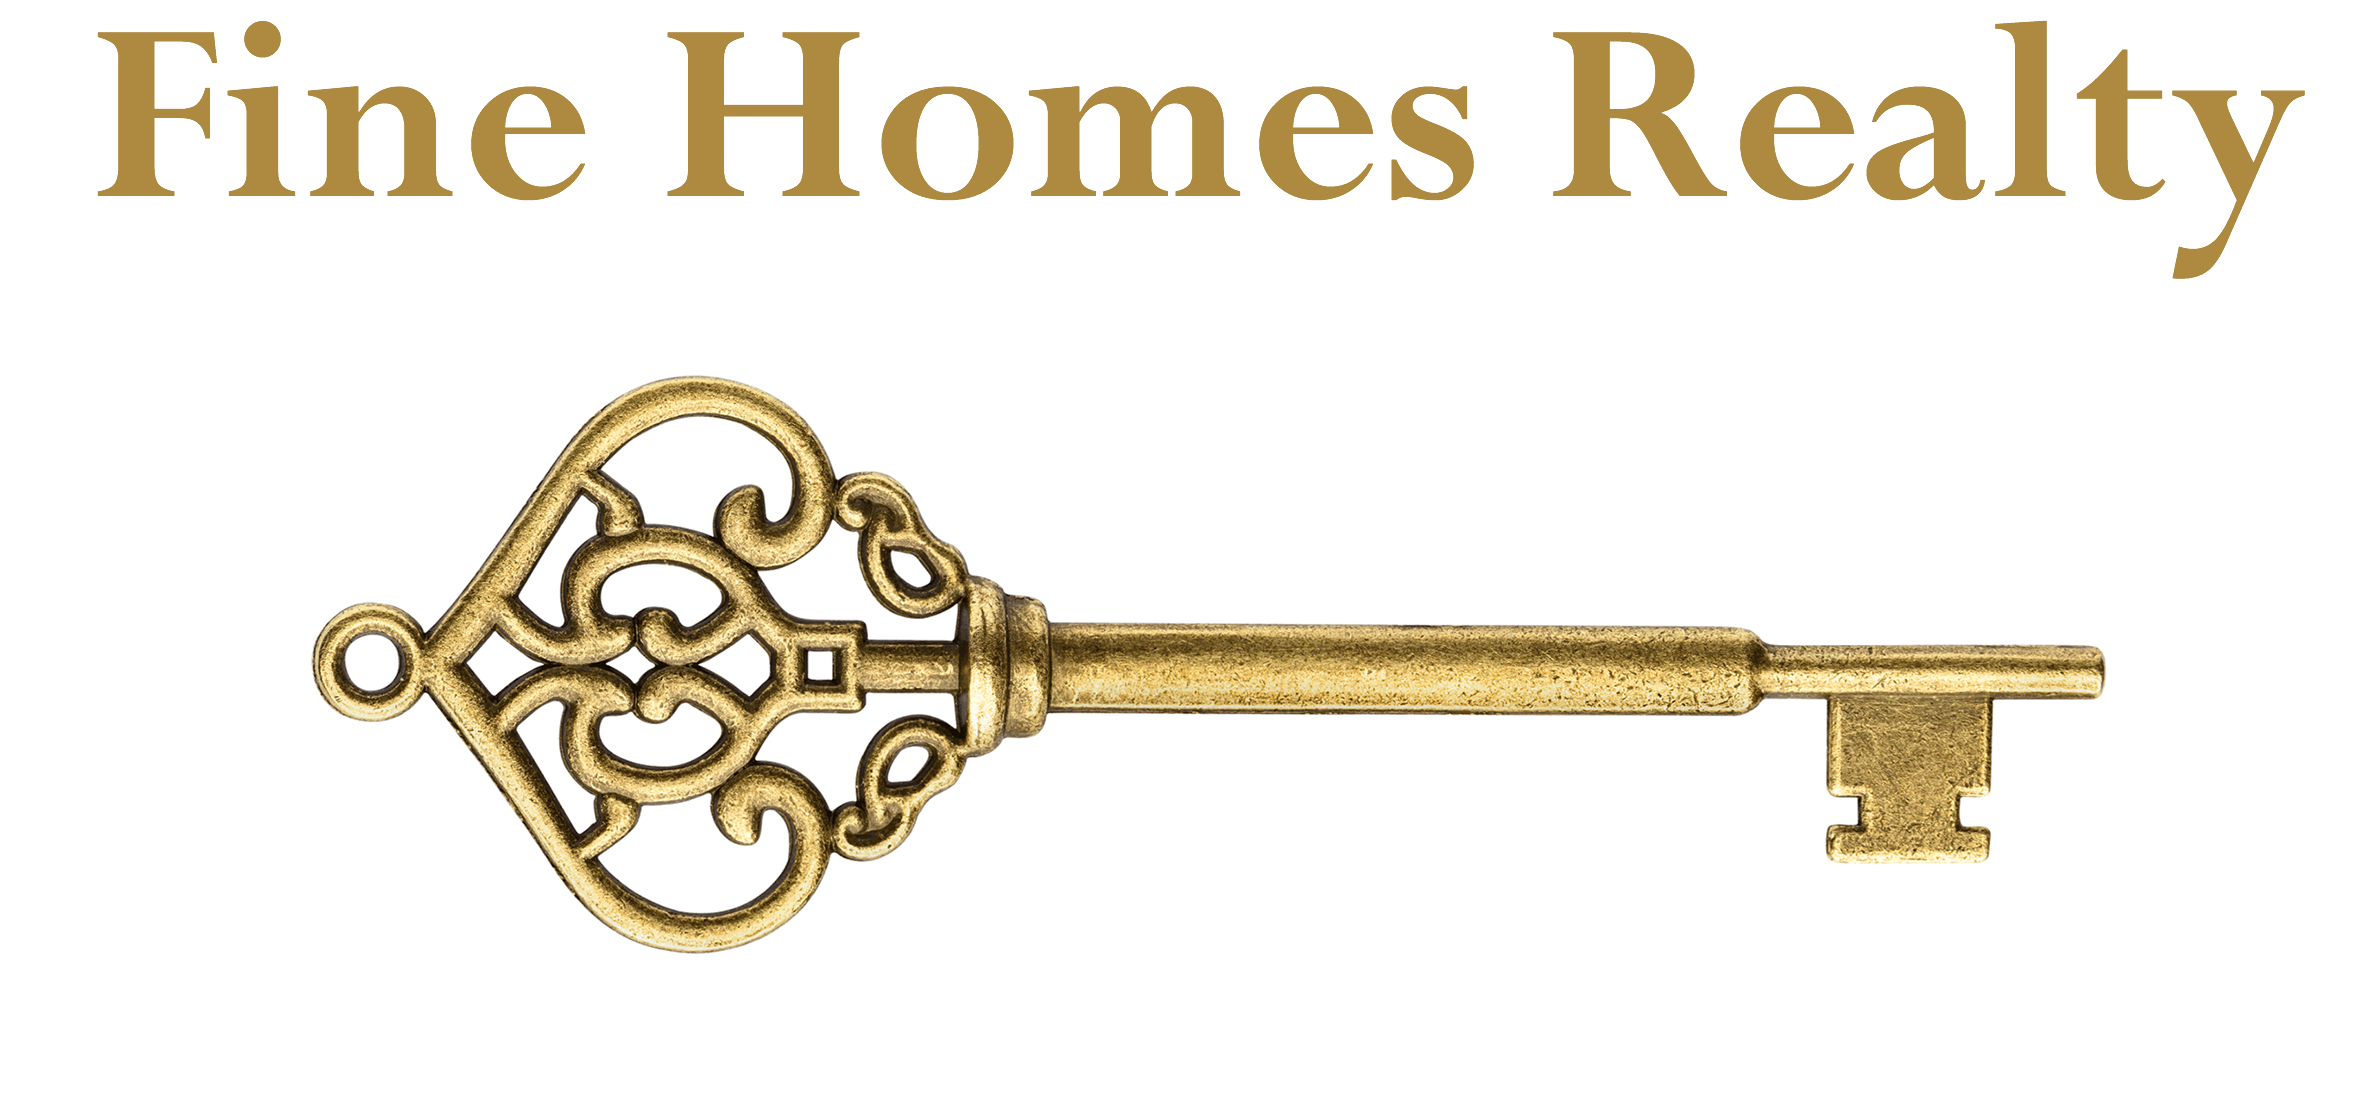 Fine Homes Realty